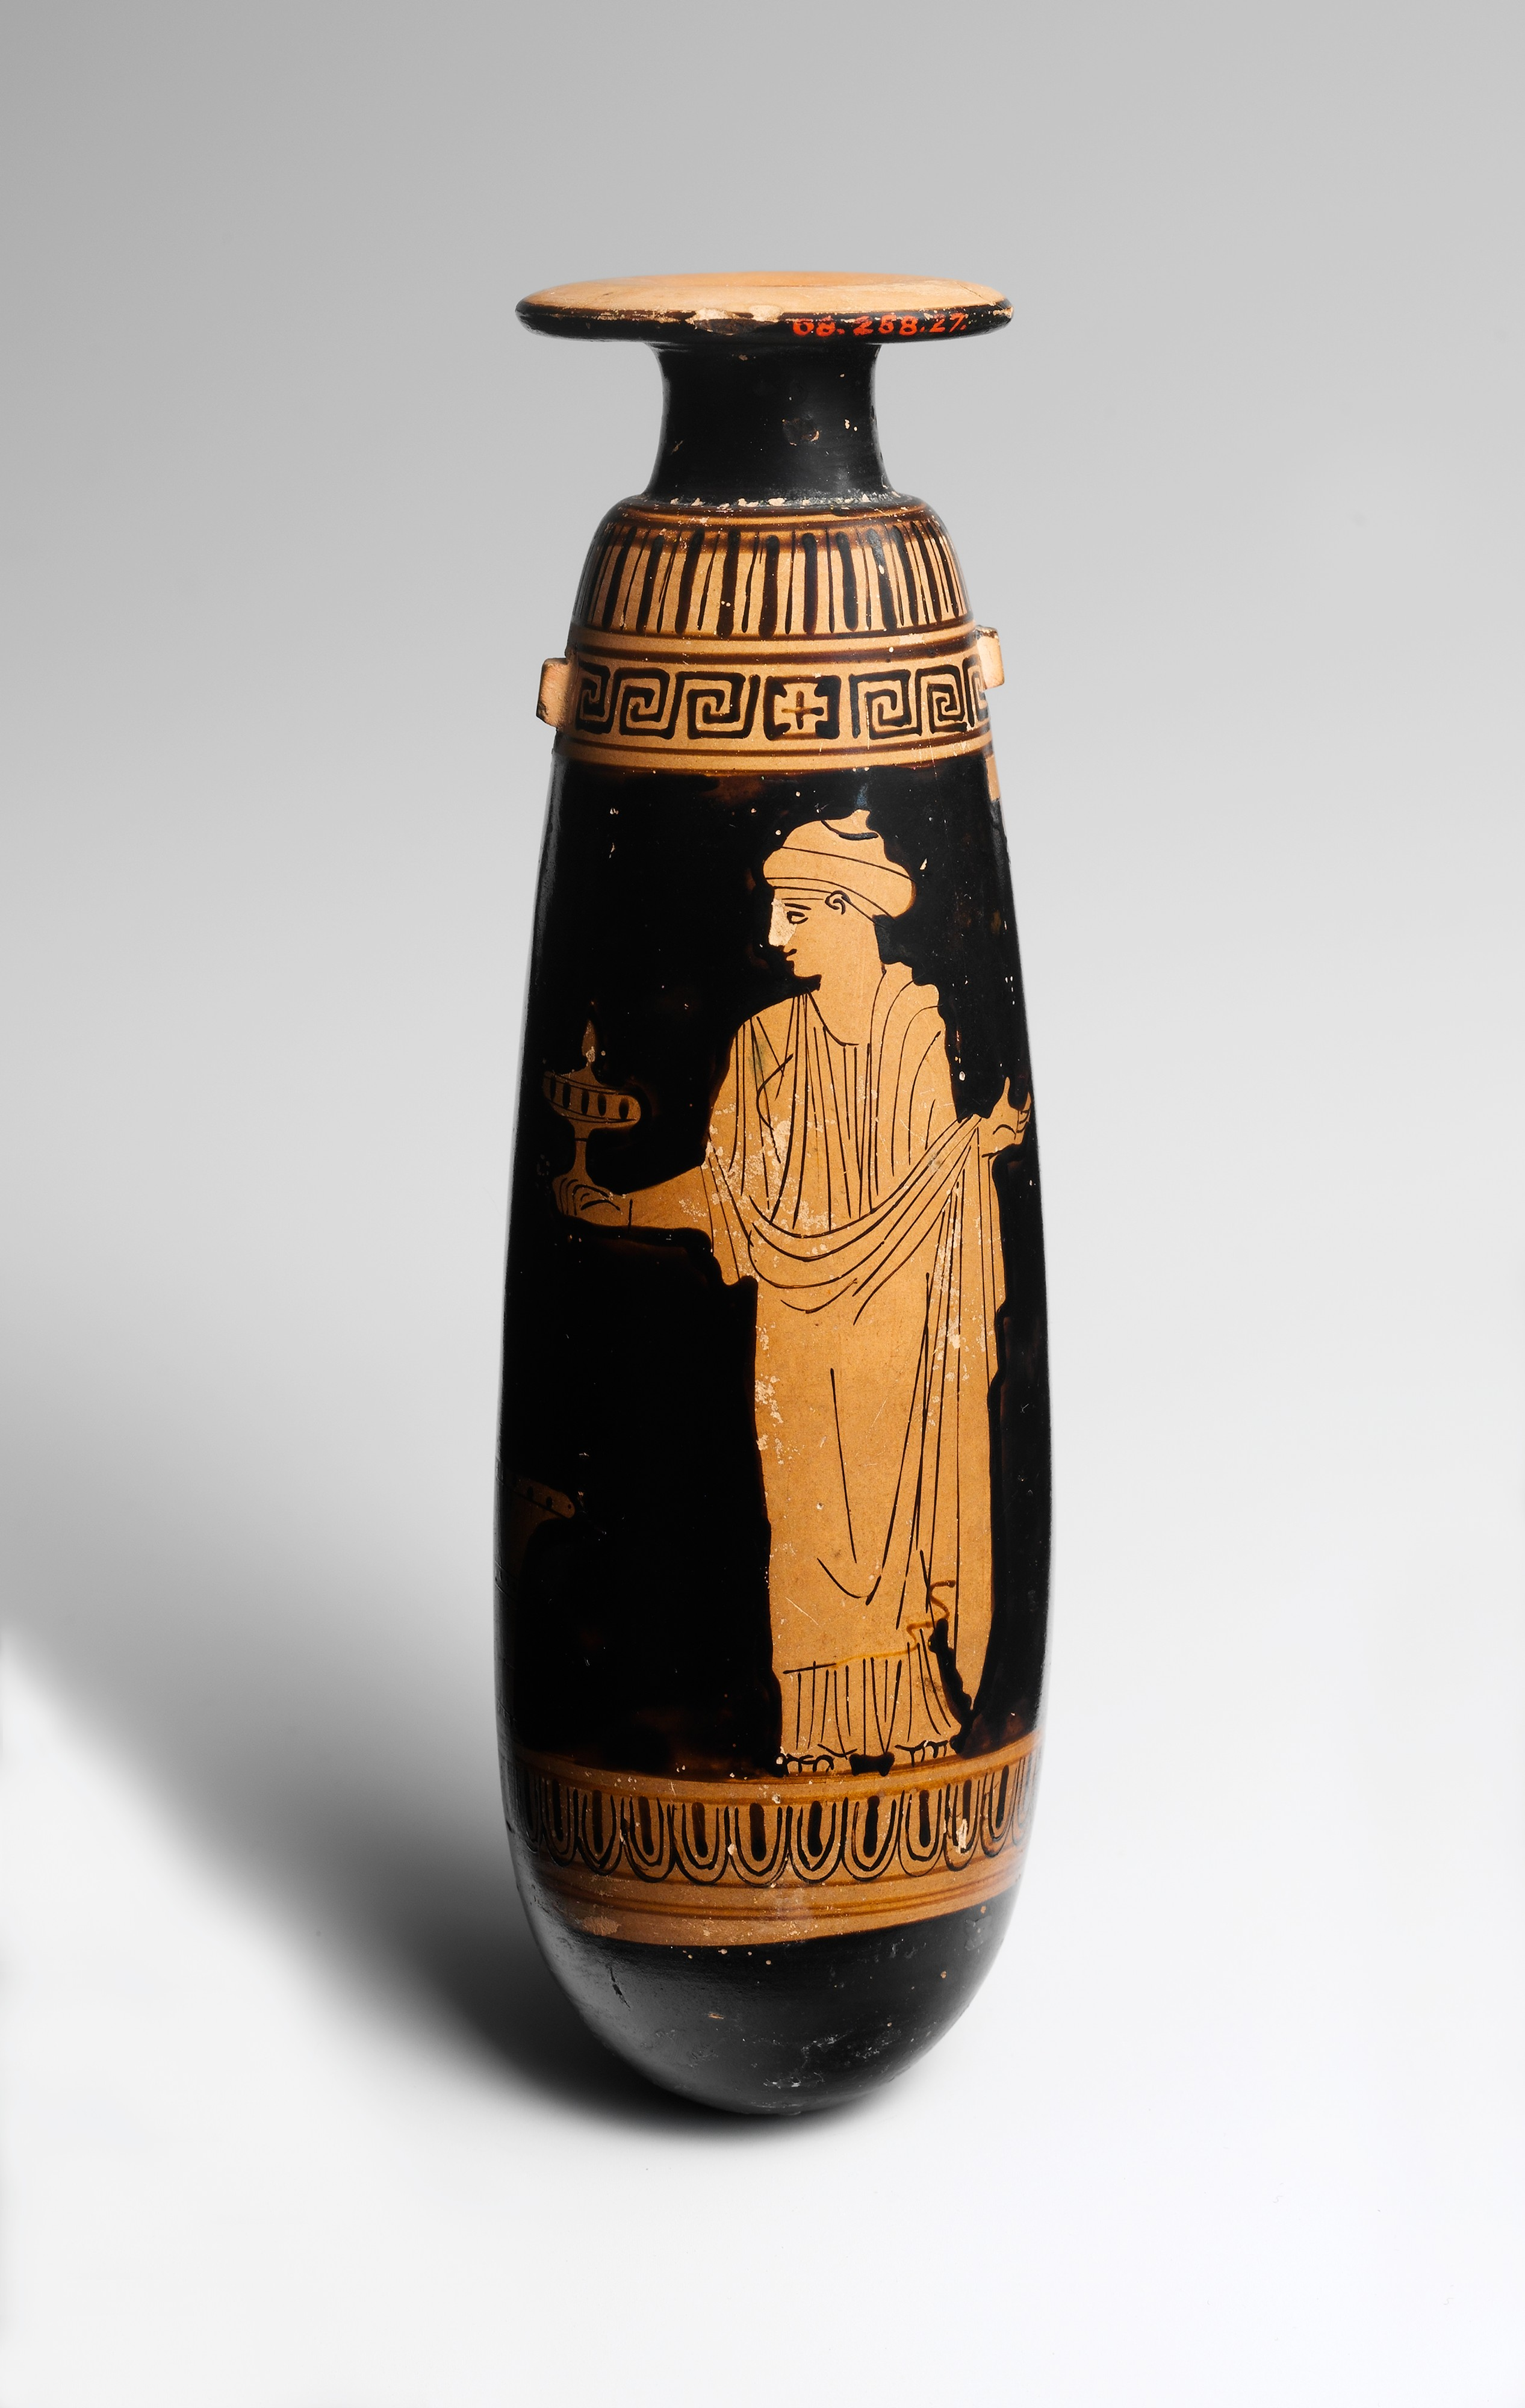 Attributed To The Persephone Painter Terracotta